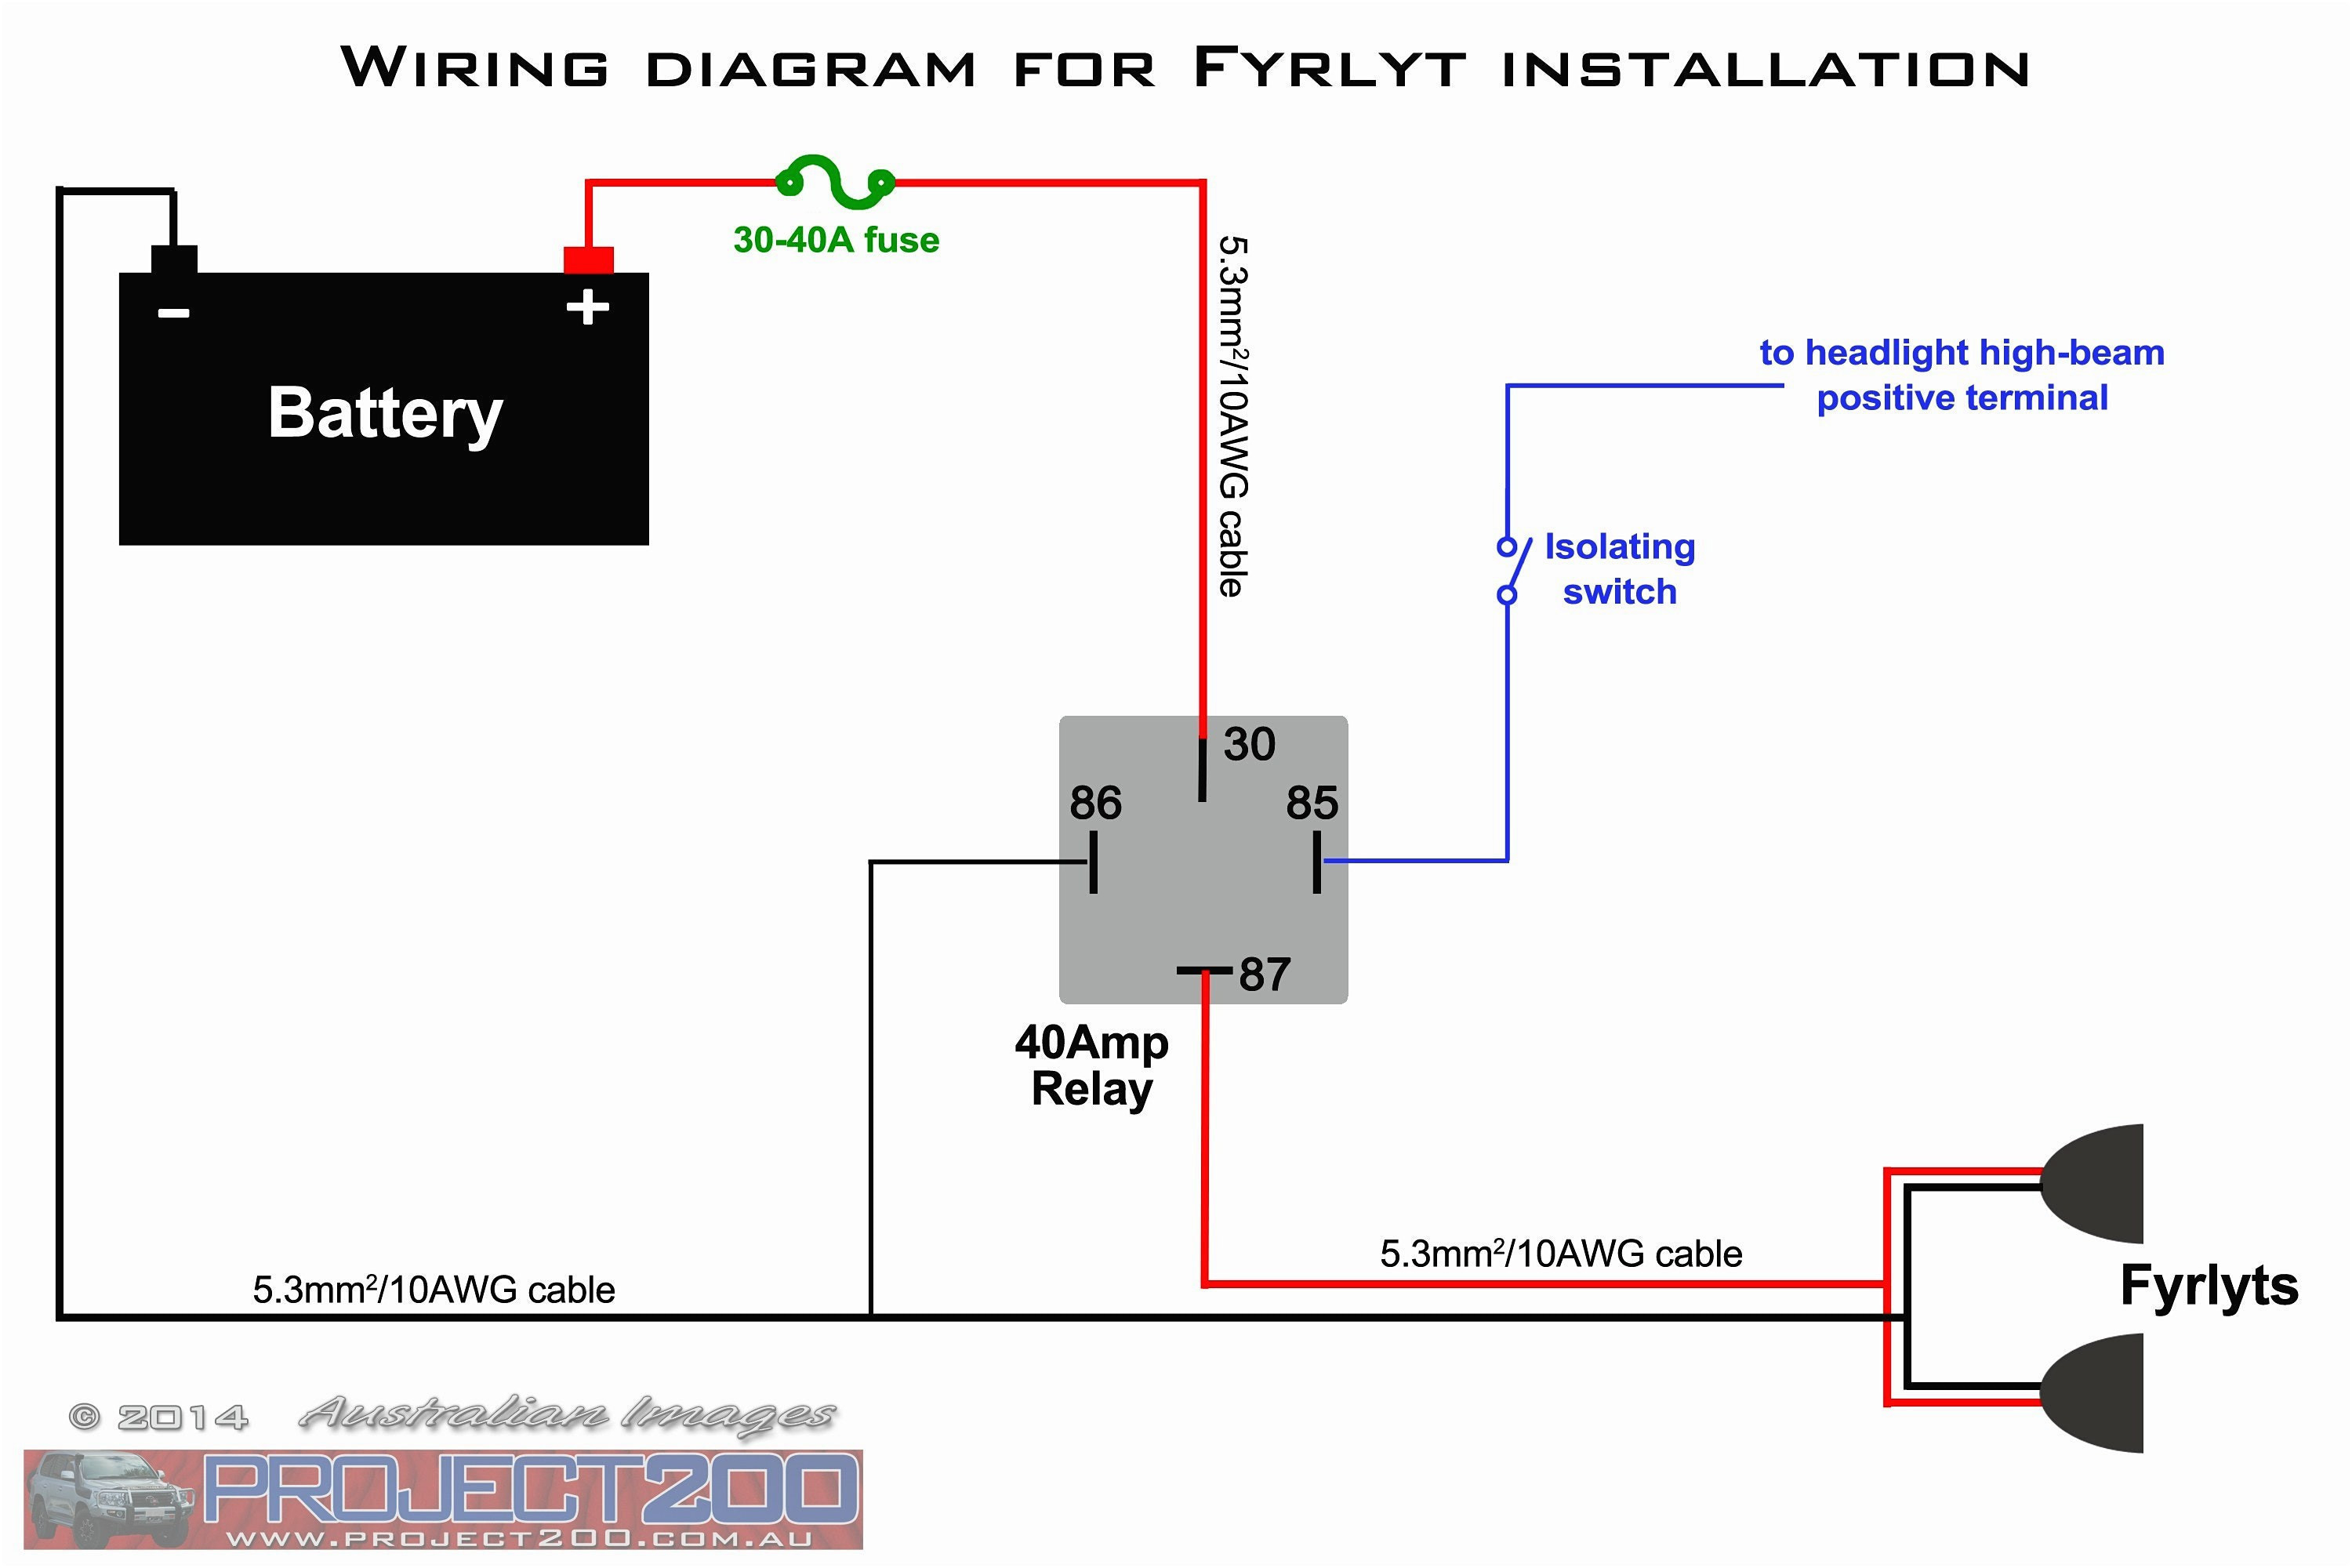 hid wiring diagram with relay sample wiring diagram sample rh faceitsalon com hid fog light wiring diagram hid lamp wiring diagram